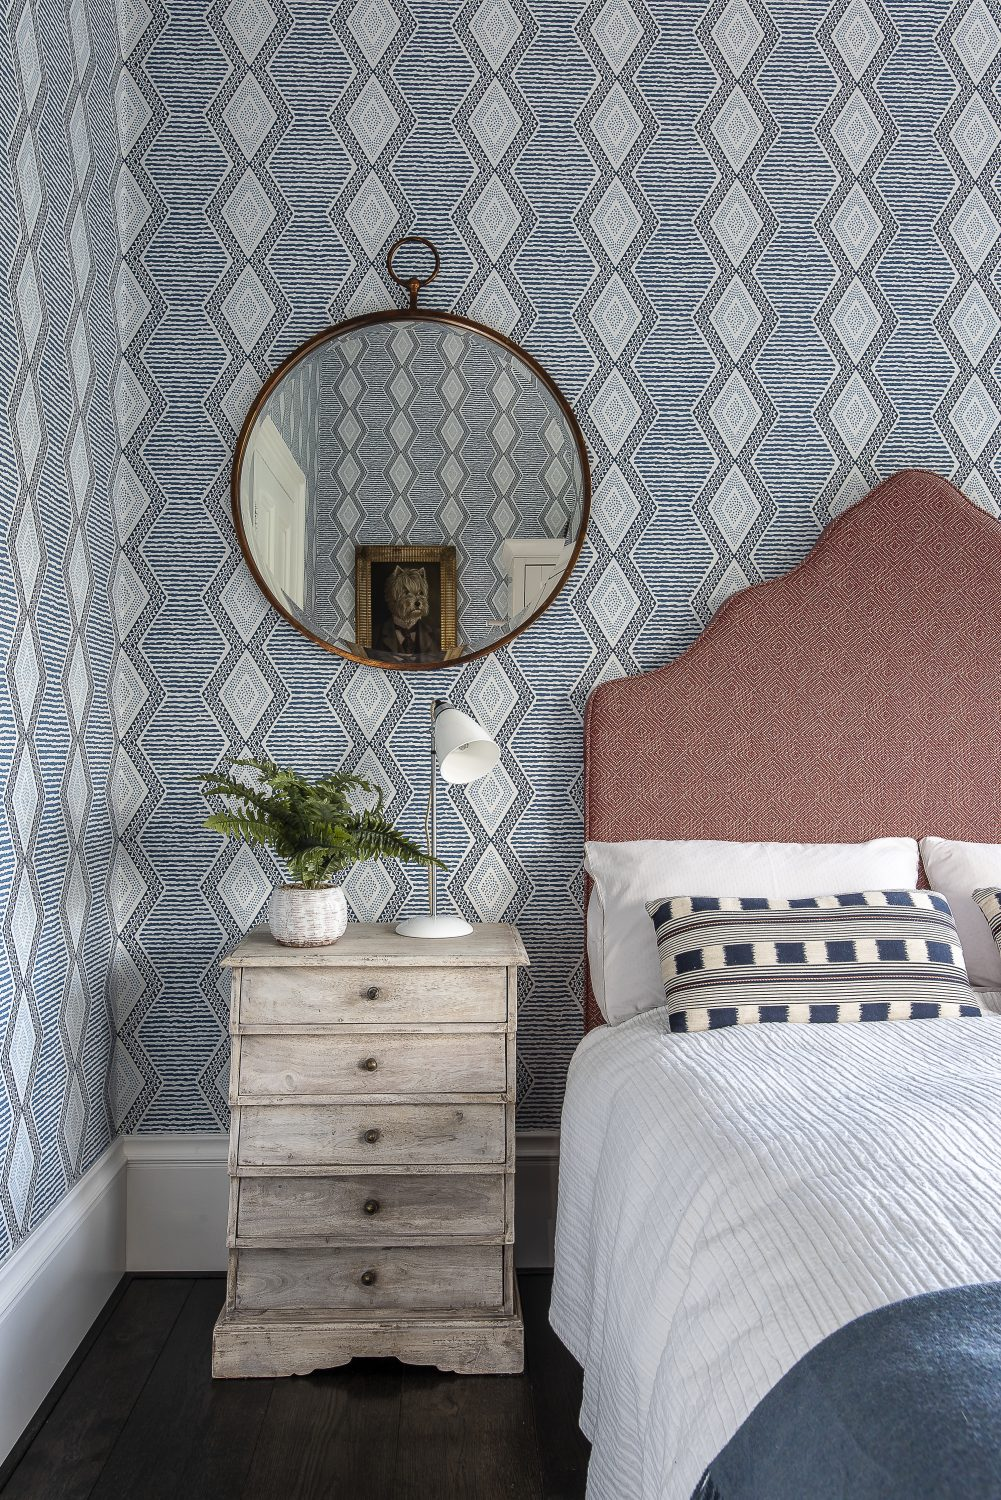 Belle Île wallpaper by Nina Campbell is a pleasing contrast to the over-sized 'Rose' bedframe that Oyla sourced from Button & Sprung